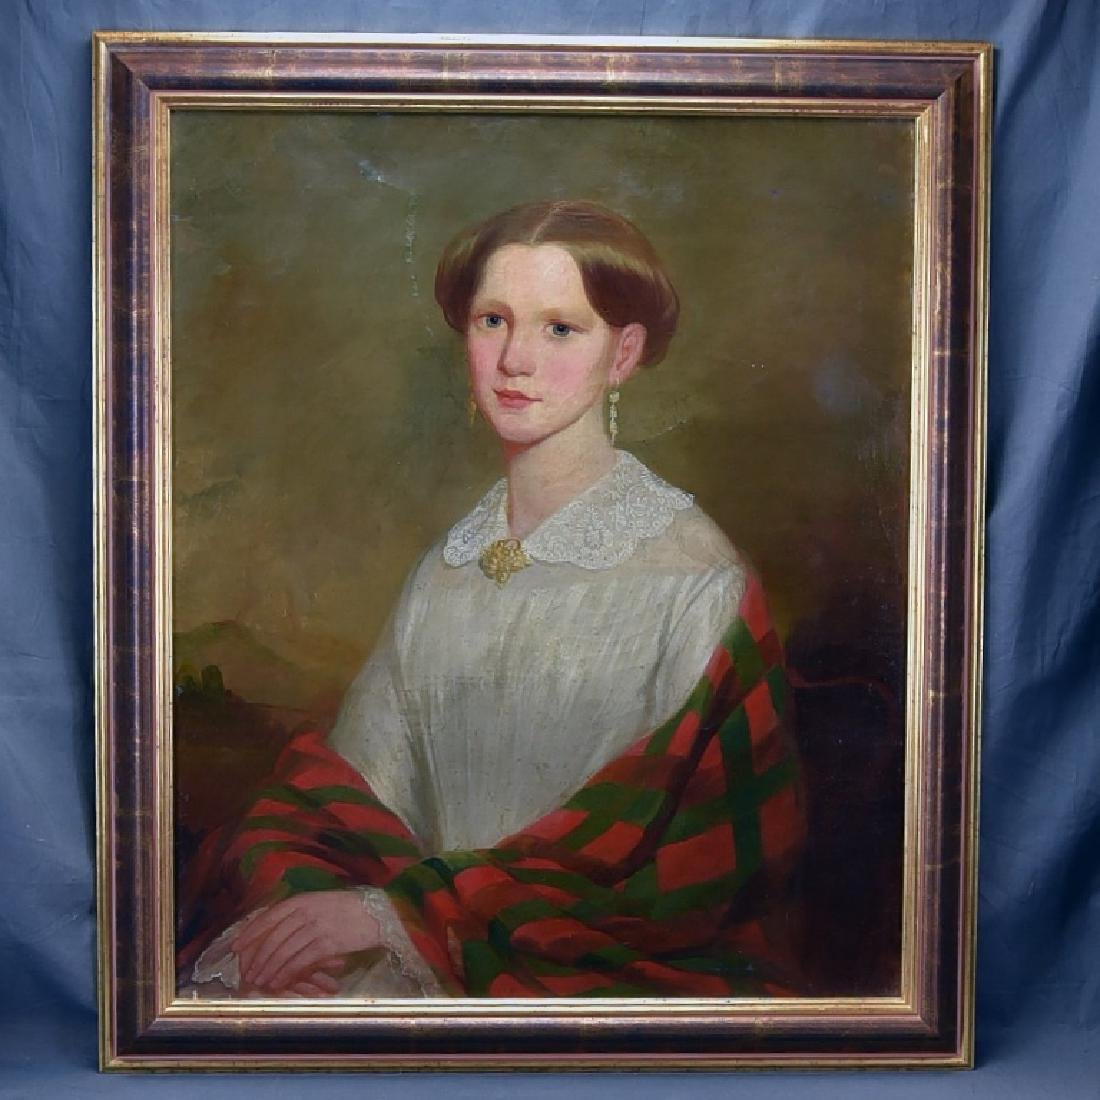 19th Century Oil on Canvas Portrait of a Woman